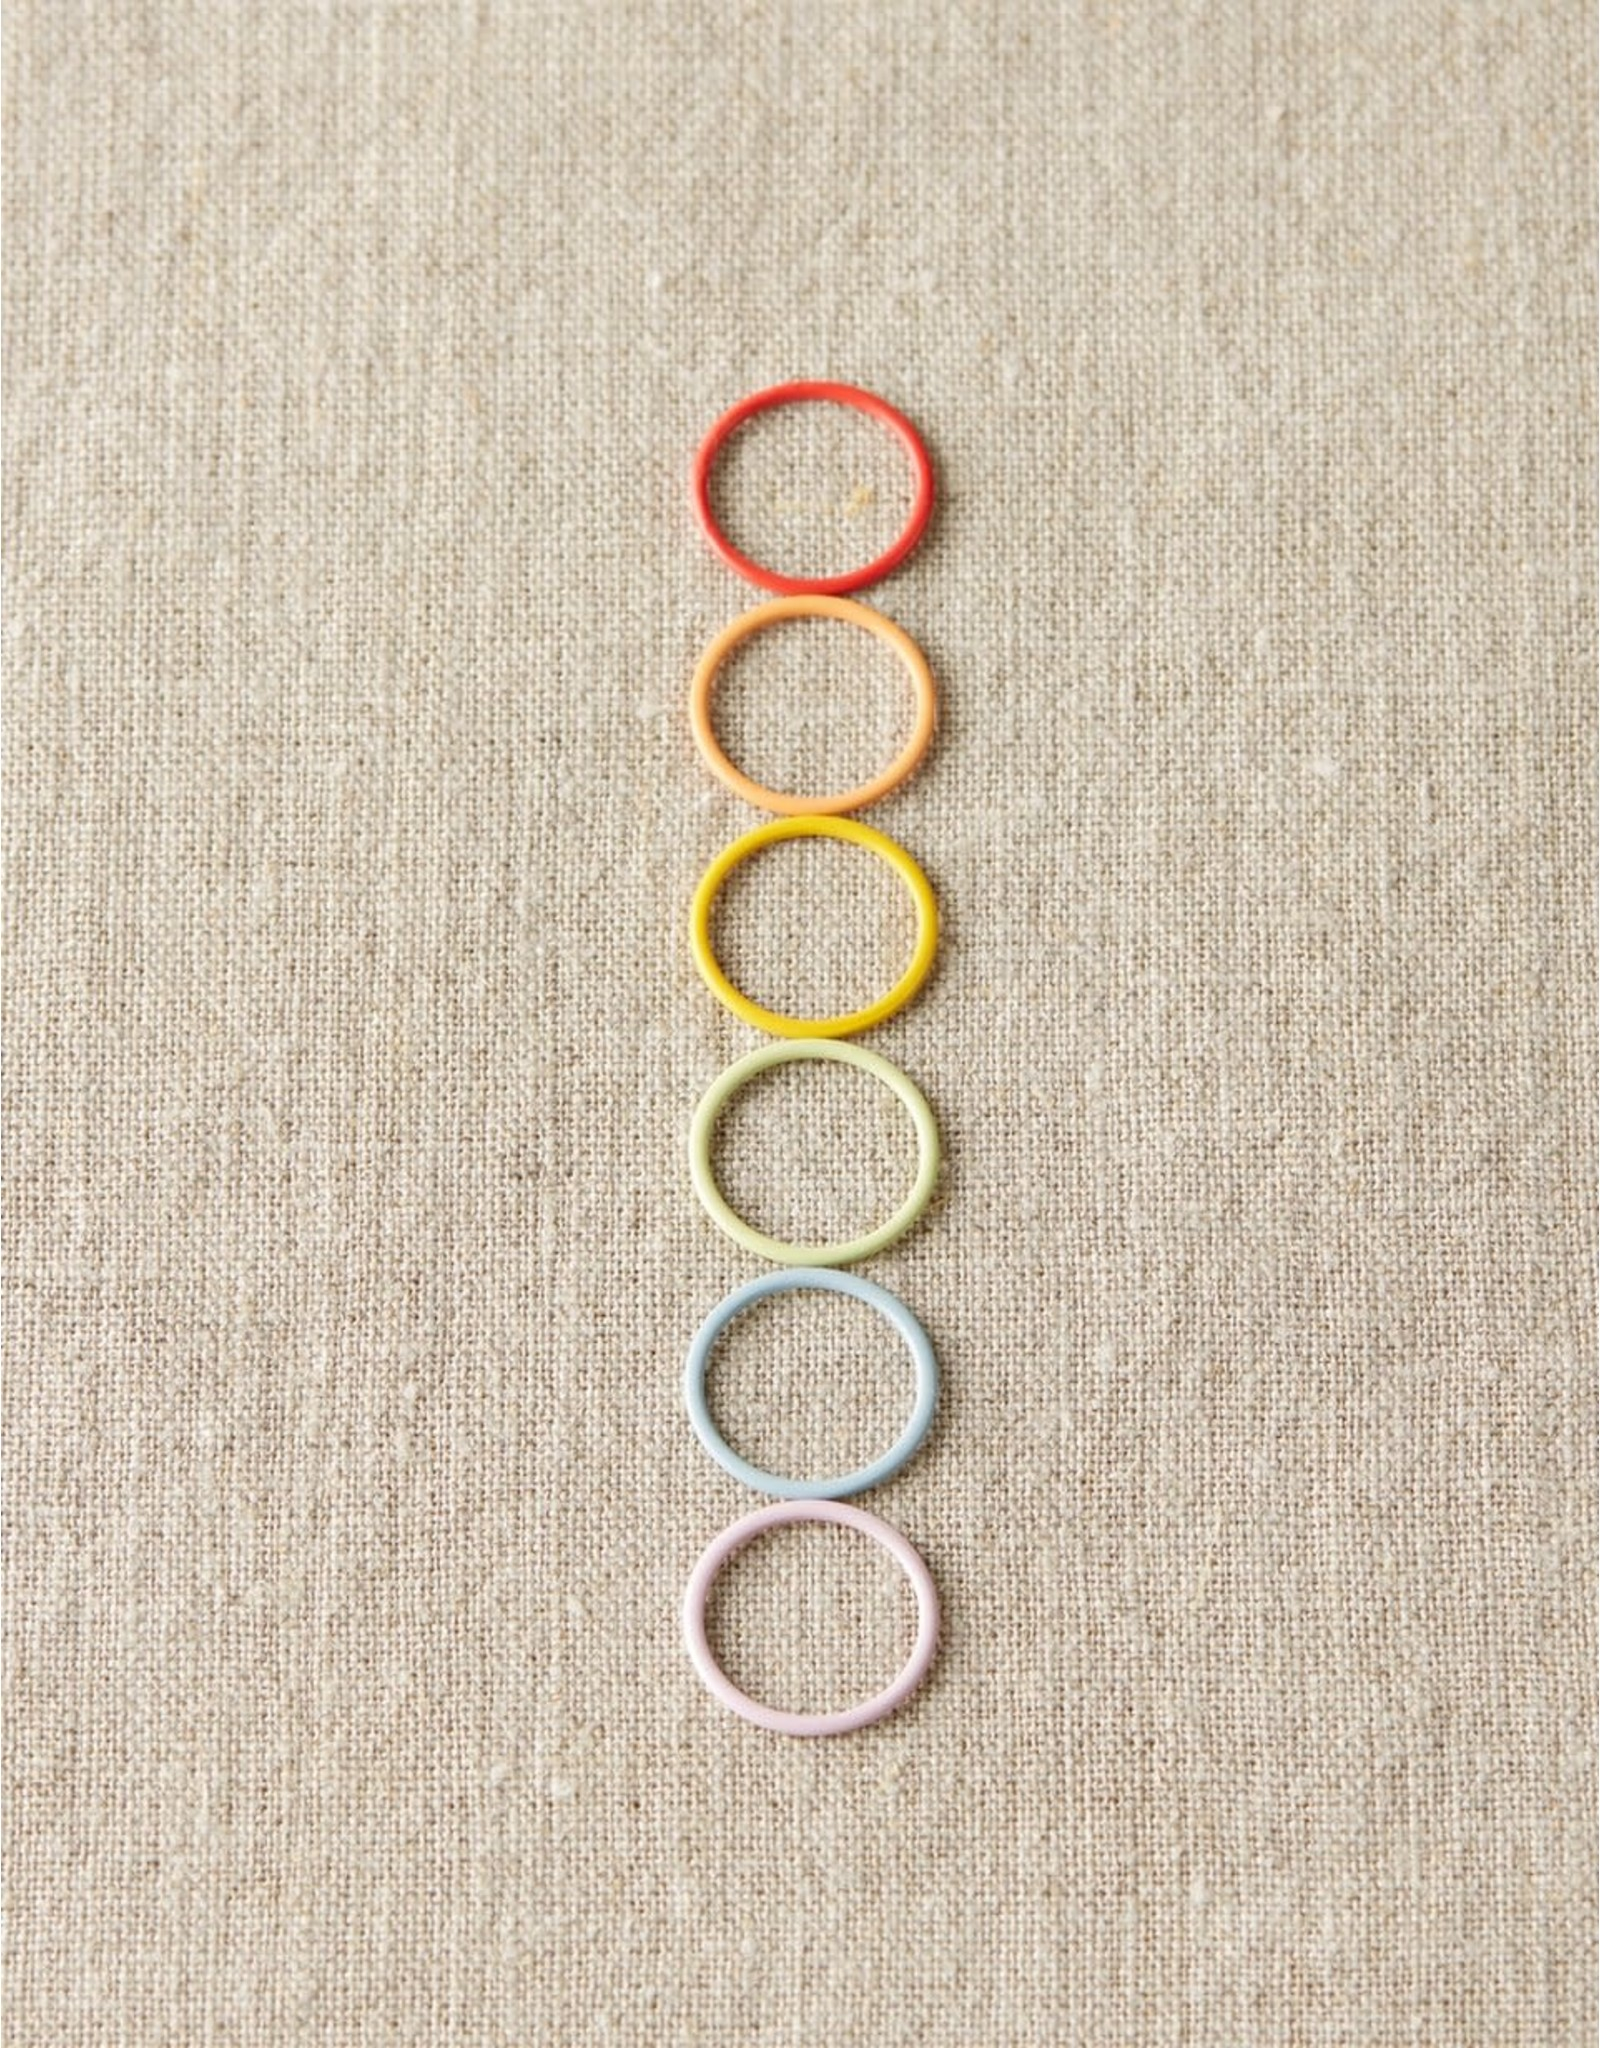 Jumbo Colorful Ring Stitch Markers by Cocoknits